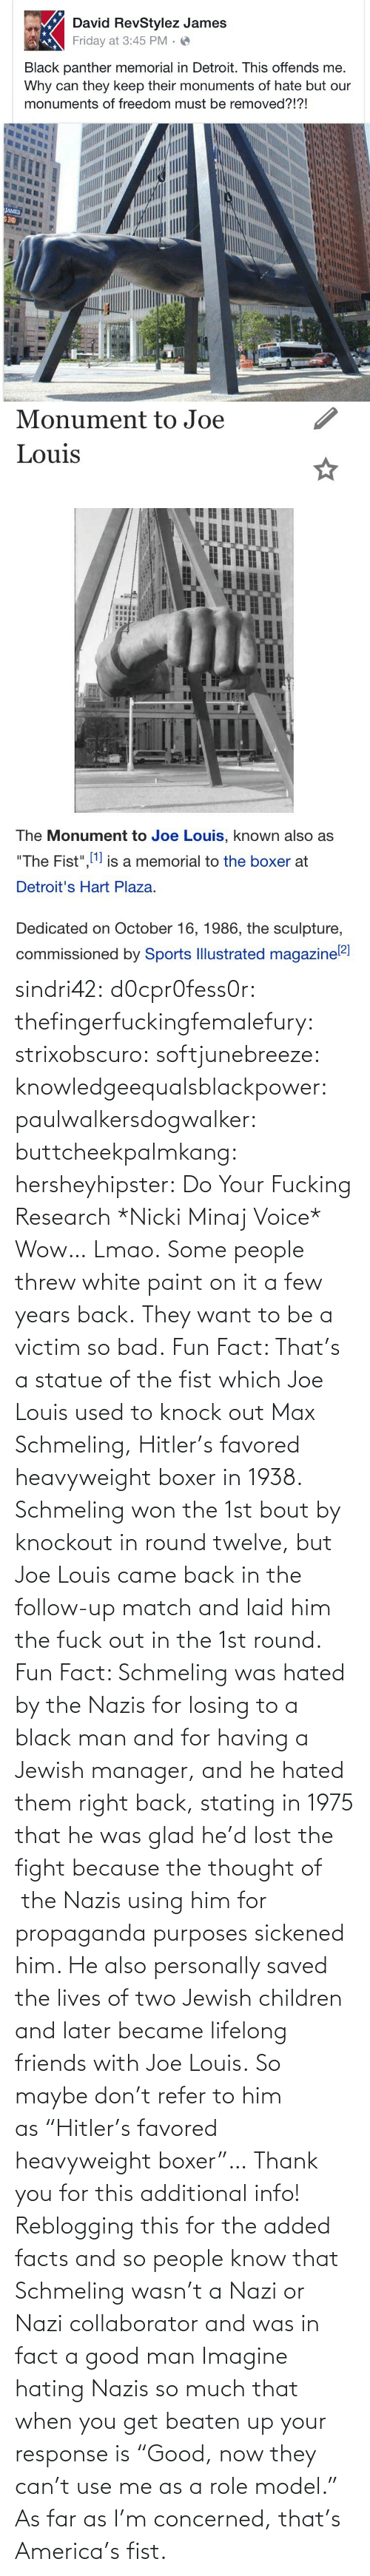 "Facts: sindri42:  d0cpr0fess0r:  thefingerfuckingfemalefury:  strixobscuro:  softjunebreeze:  knowledgeequalsblackpower:  paulwalkersdogwalker:   buttcheekpalmkang:   hersheyhipster:  Do Your Fucking Research *Nicki Minaj Voice*    Wow… Lmao.   Some people threw white paint on it a few years back.   They want to be a victim so bad.  Fun Fact: That's a statue of the fist which Joe Louis used to knock out Max Schmeling, Hitler's favored heavyweight boxer in 1938. Schmeling won the 1st bout by knockout in round twelve, but Joe Louis came back in the follow-up match and laid him the fuck out in the 1st round.  Fun Fact: Schmeling was hated by the Nazis for losing to a black man and for having a Jewish manager, and he hated them right back, stating in 1975 that he was glad he'd lost the fight because the thought of  the Nazis using him for propaganda purposes sickened him. He also personally saved the lives of two Jewish children and later became lifelong friends with Joe Louis. So maybe don't refer to him as ""Hitler's favored heavyweight boxer""…  Thank you for this additional info! Reblogging this for the added facts and so people know that Schmeling wasn't a Nazi or Nazi collaborator and was in fact a good man   Imagine hating Nazis so much that when you get beaten up your response is ""Good, now they can't use me as a role model.""  As far as I'm concerned, that's America's fist."